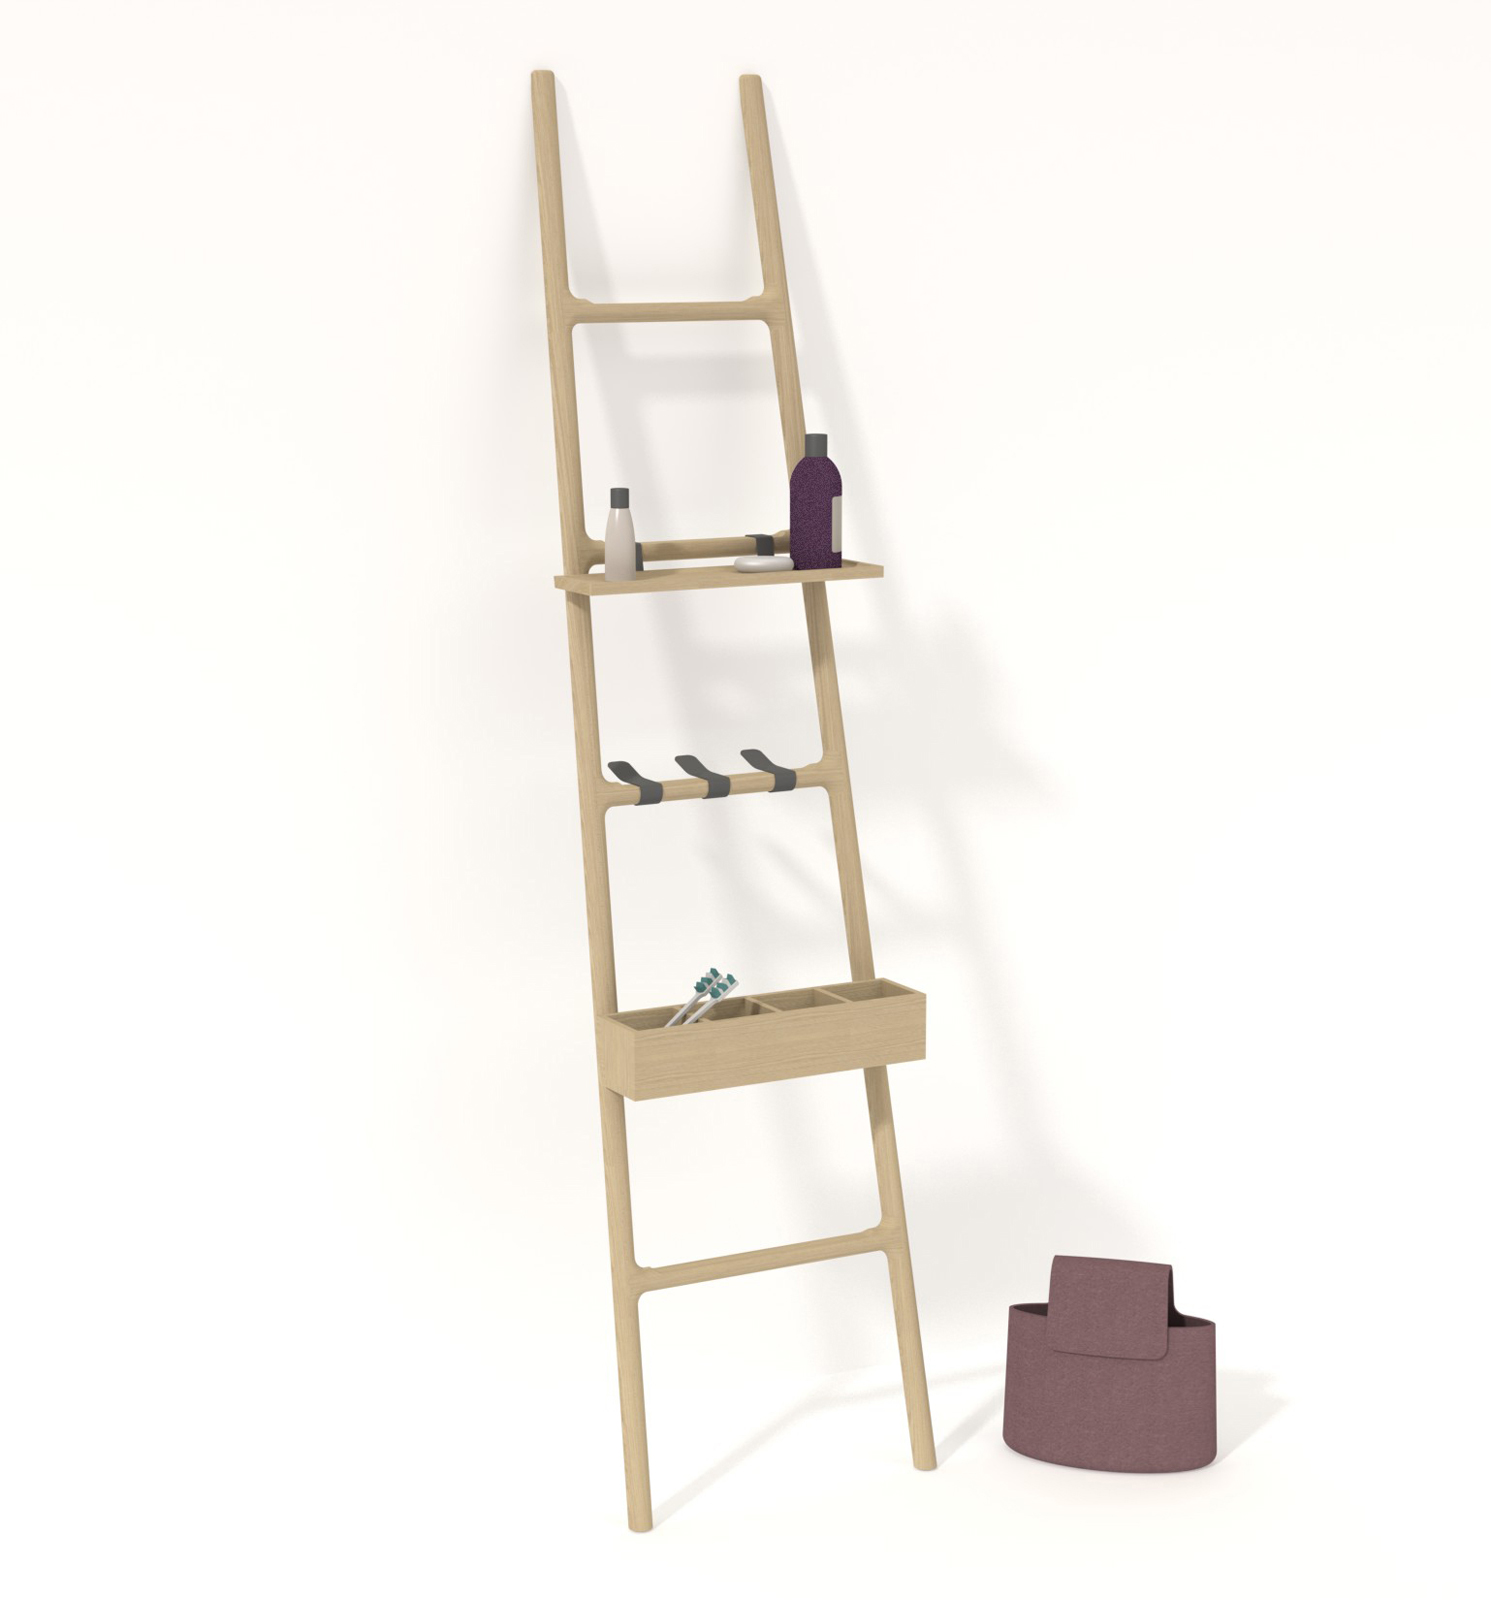 The Tilt rack by SmithMatthias for Discipline.